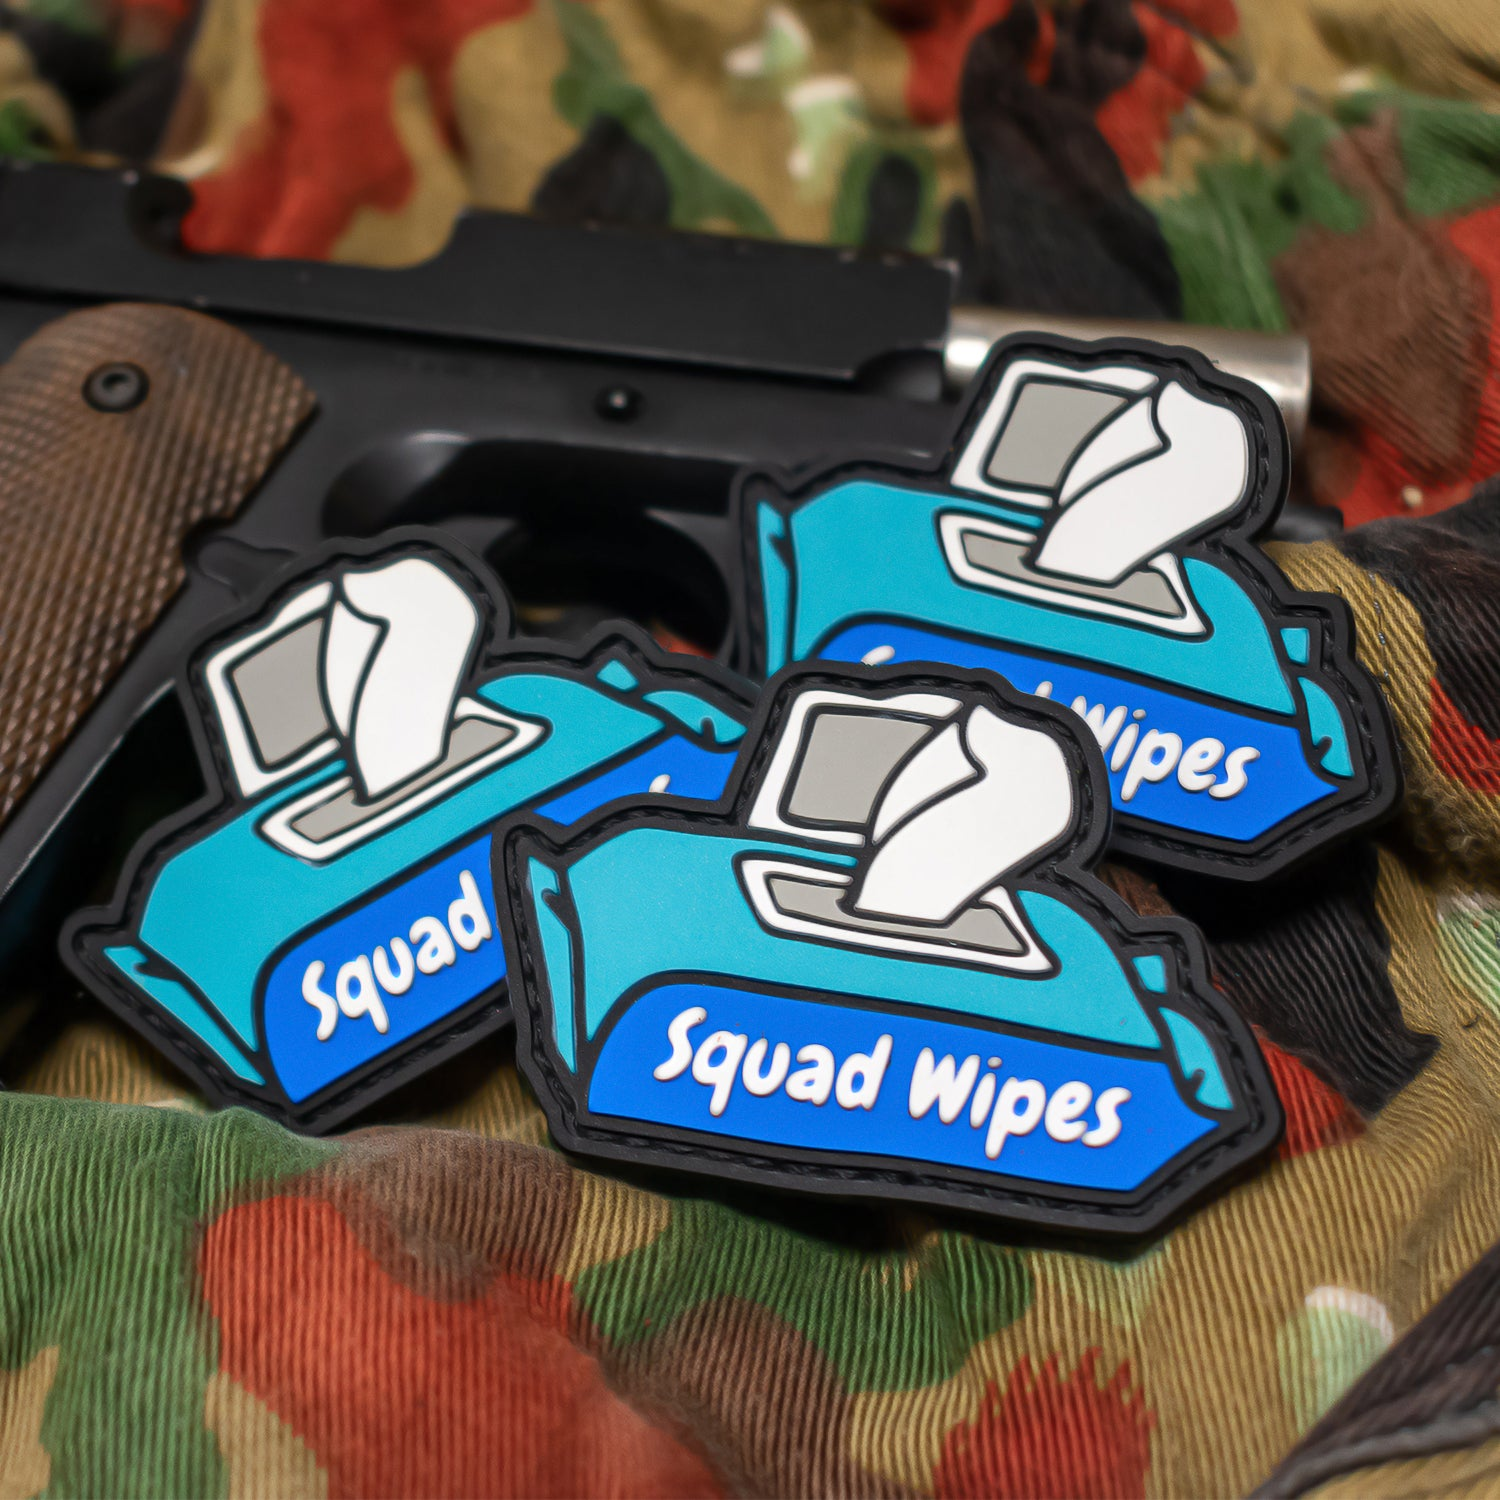 Squad Wipes - PVC Patch